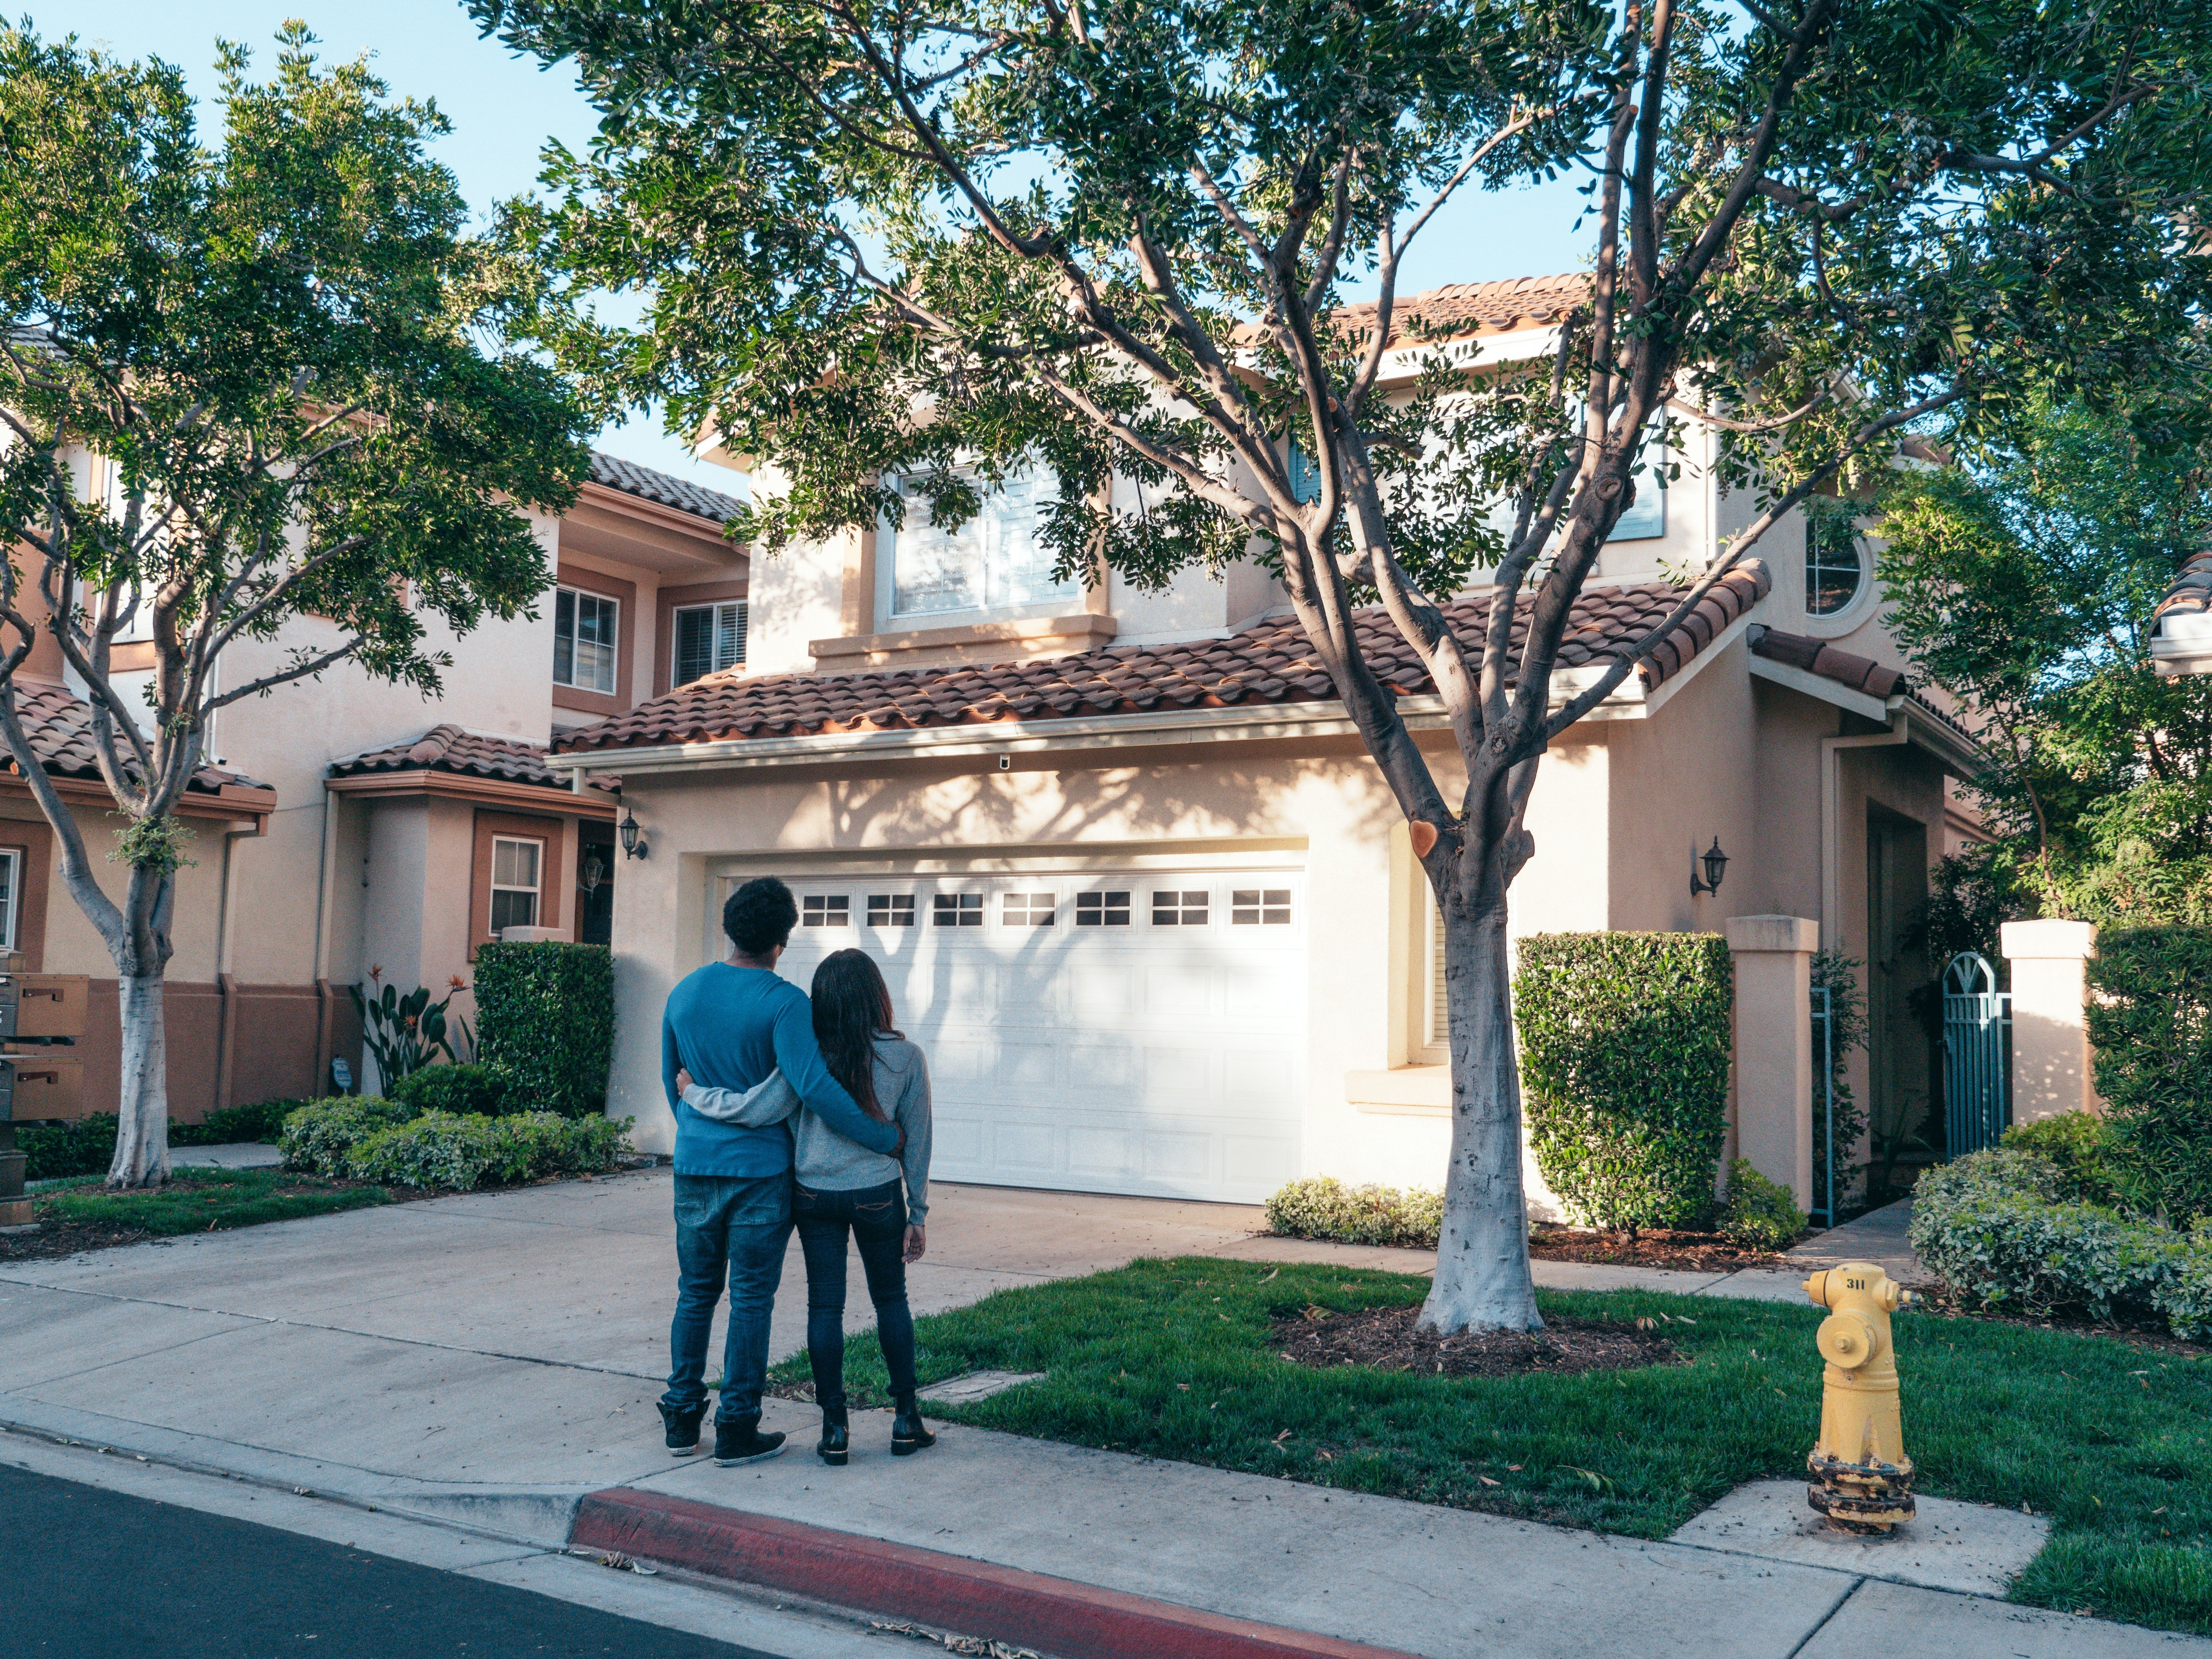 Pictured - A couple standing in front of their house | Source: Pexels